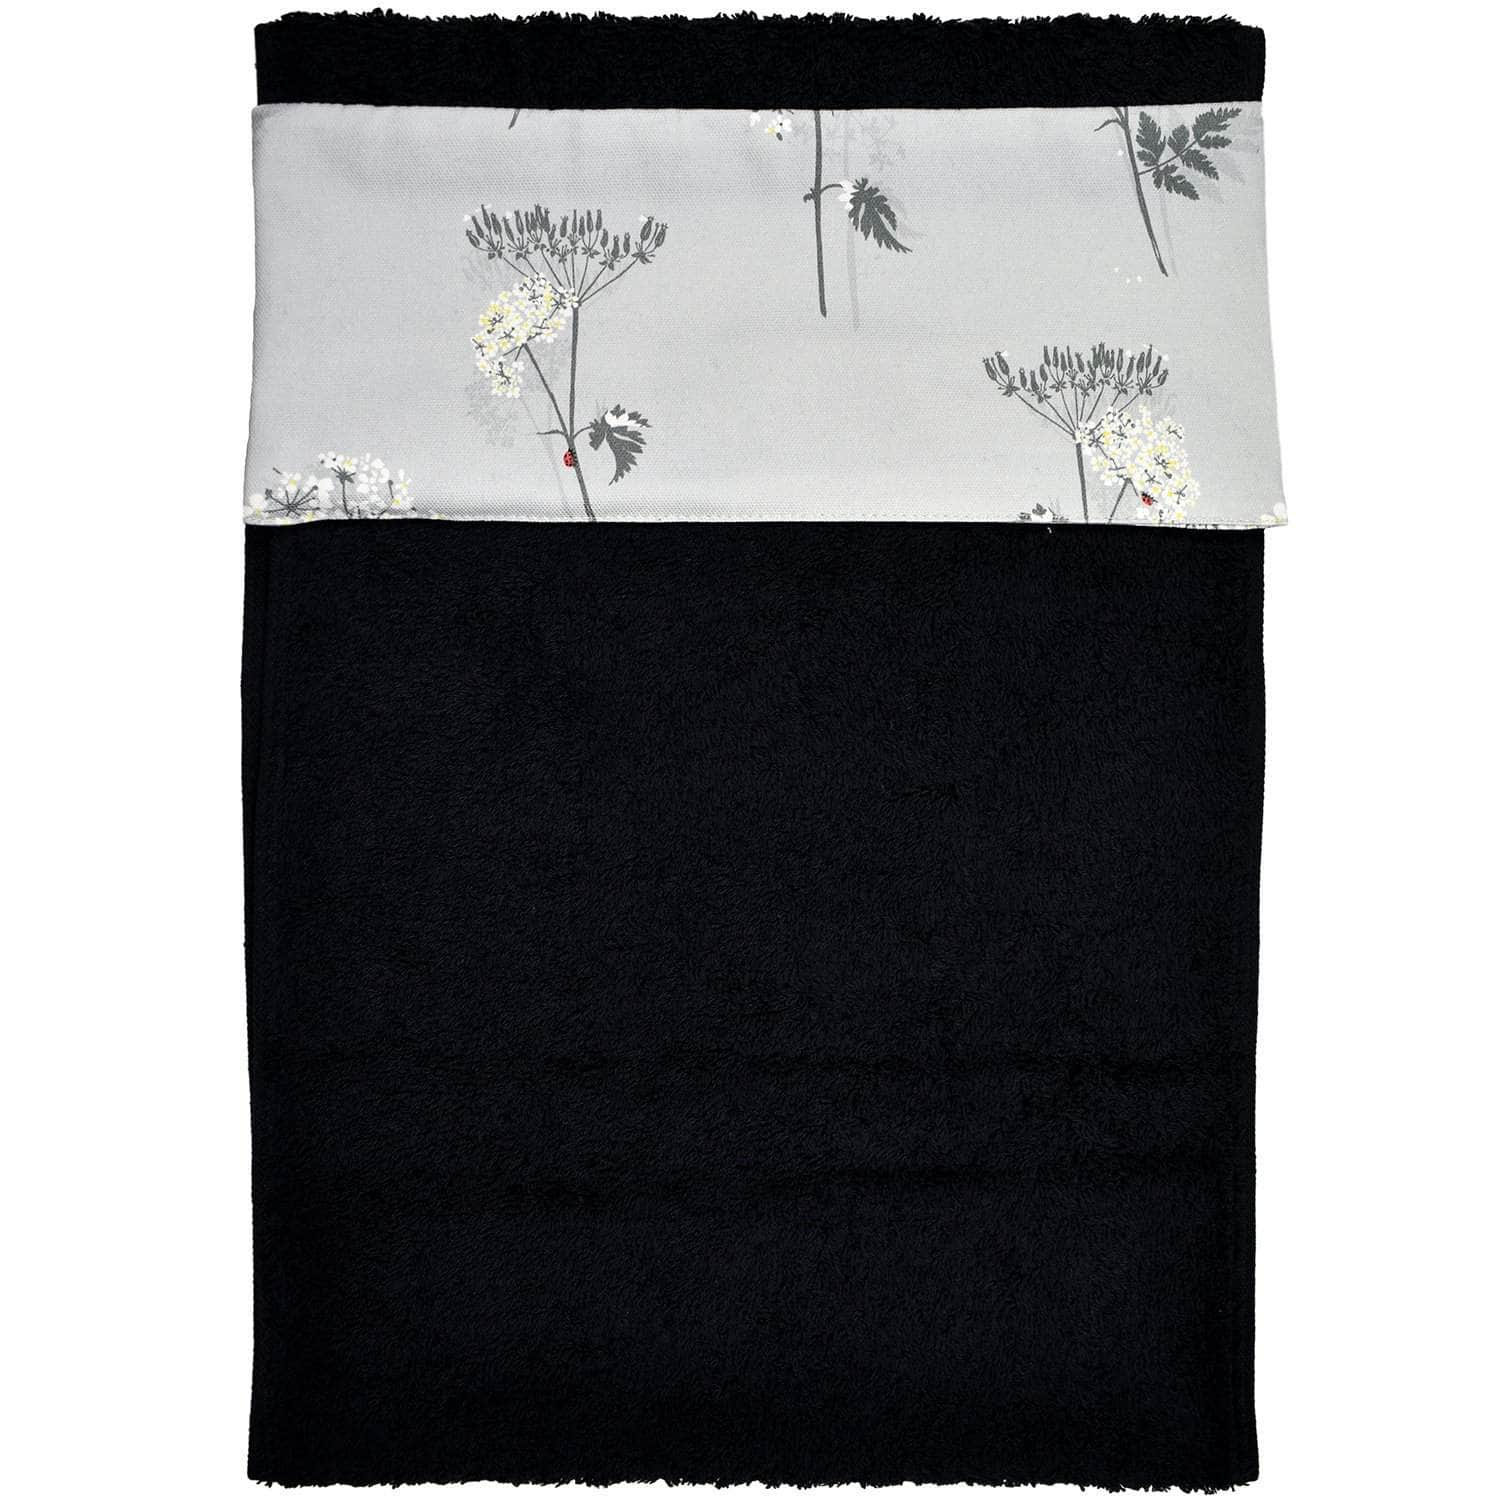 *New* Narrow (32 cm) hanging towel with velcro attachment - 'Cow Parsley'